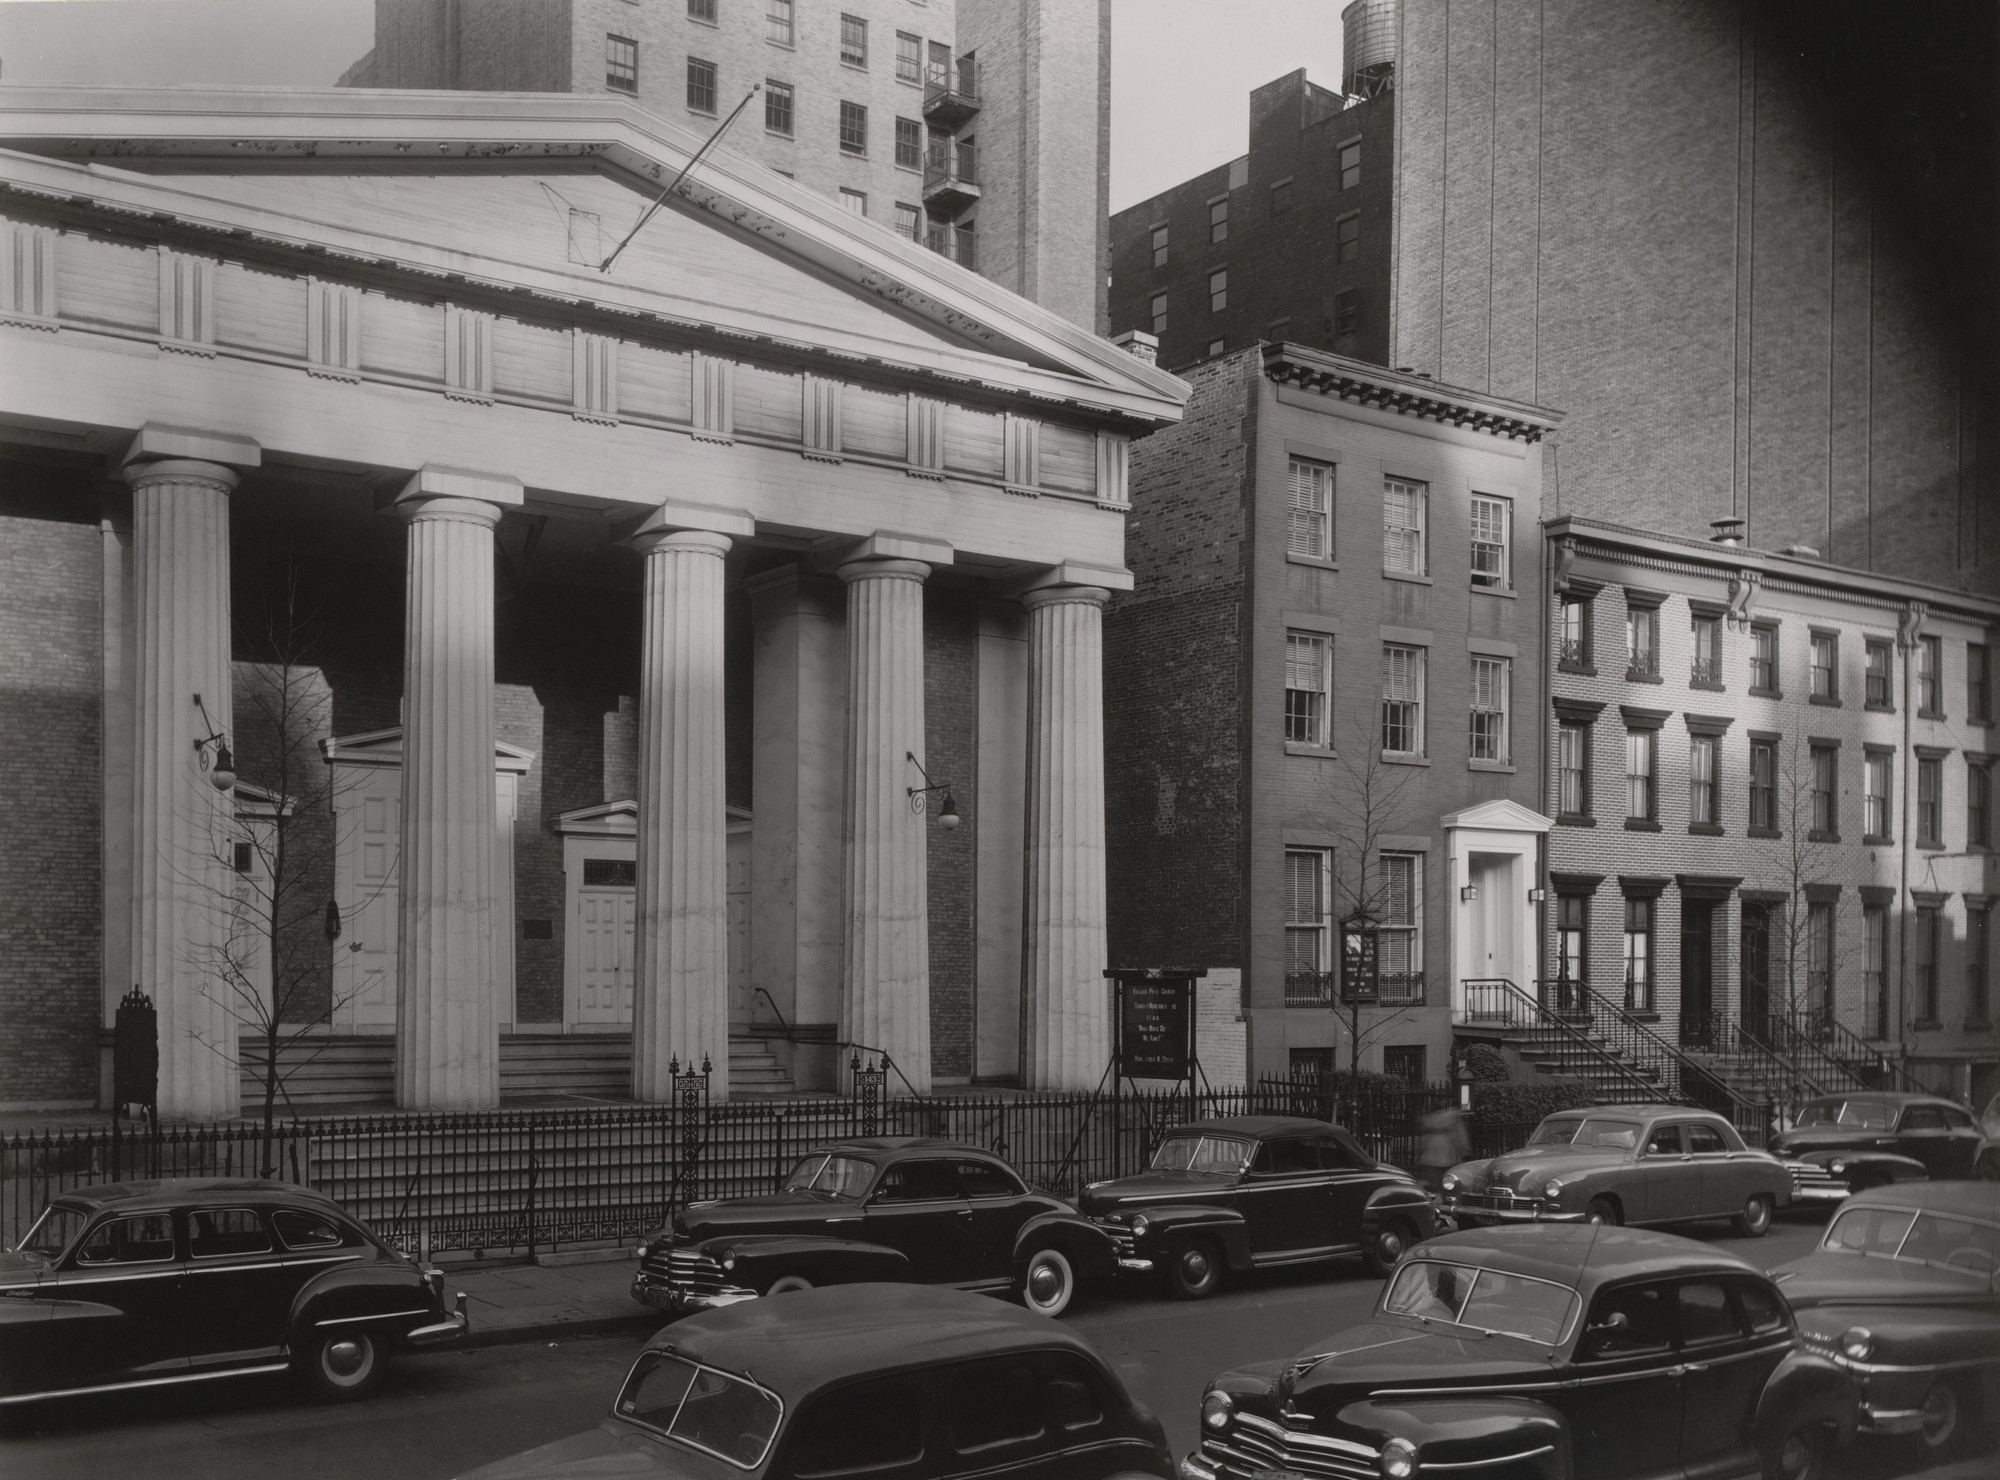 Berenice Abbott. Village Presbyterian Church, 143 West 13th Street. c. 1948